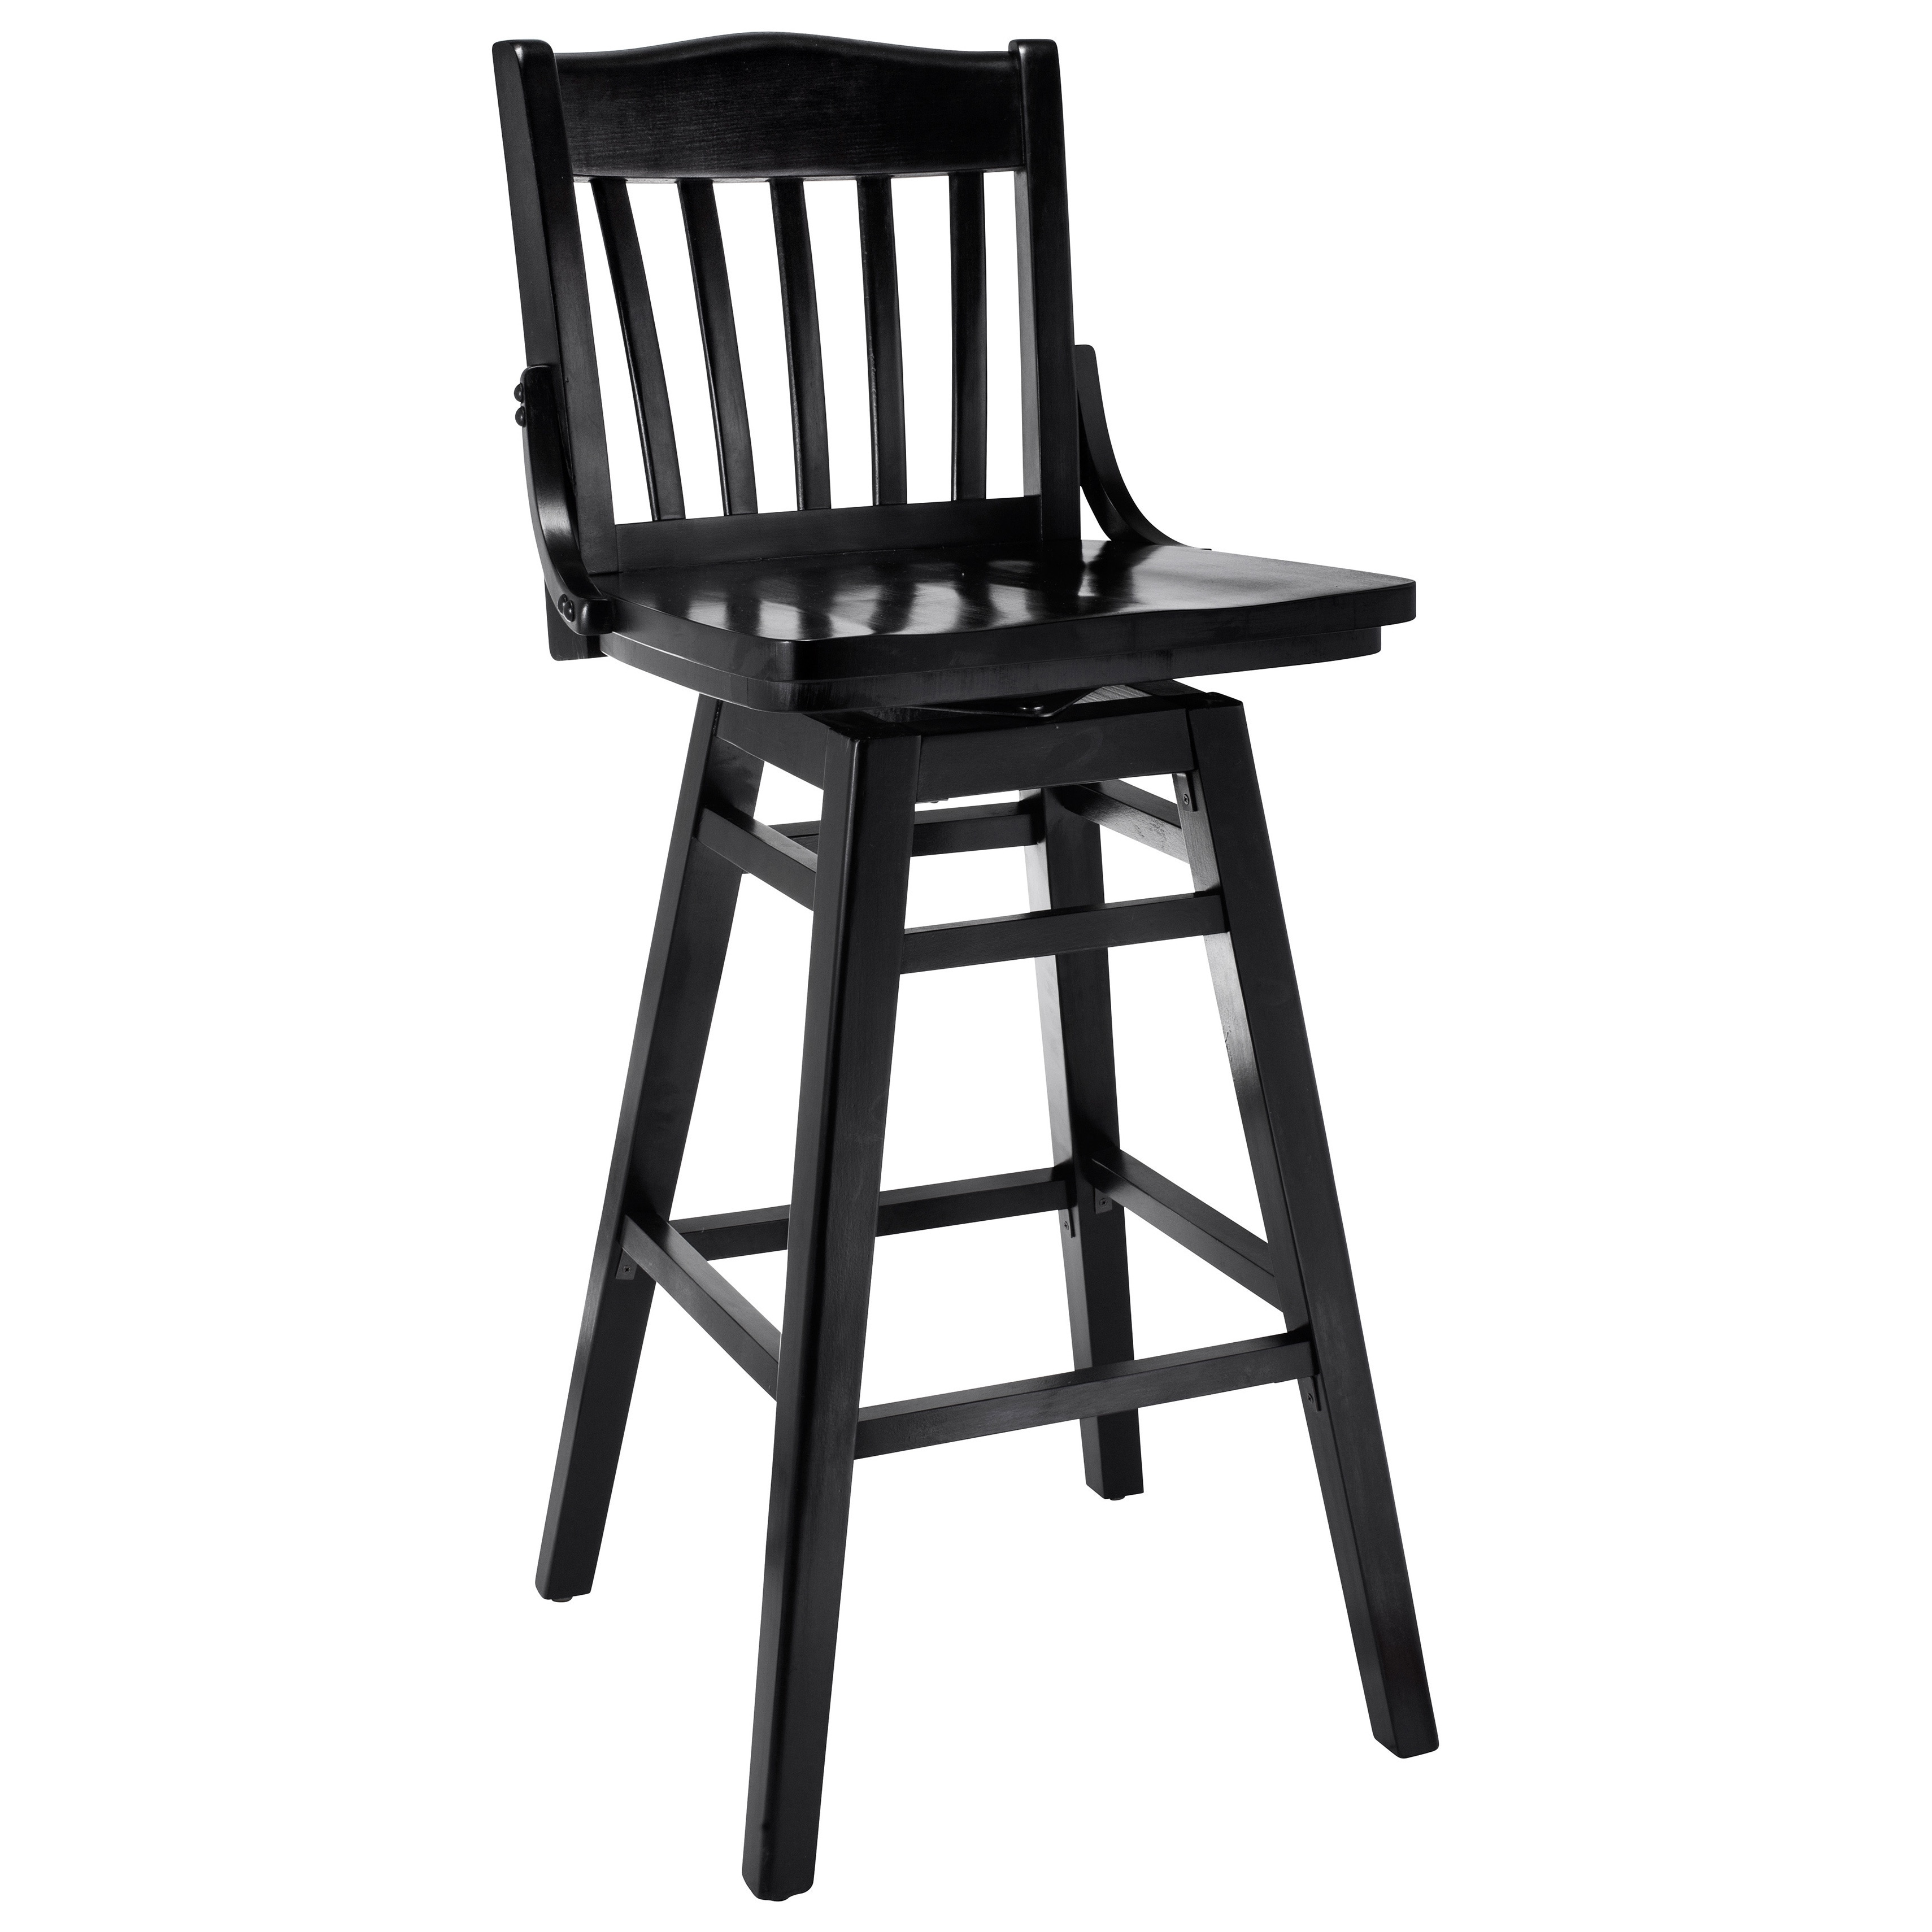 Shop library beech wood swivel bar stool on sale free shipping today overstock com 8785059